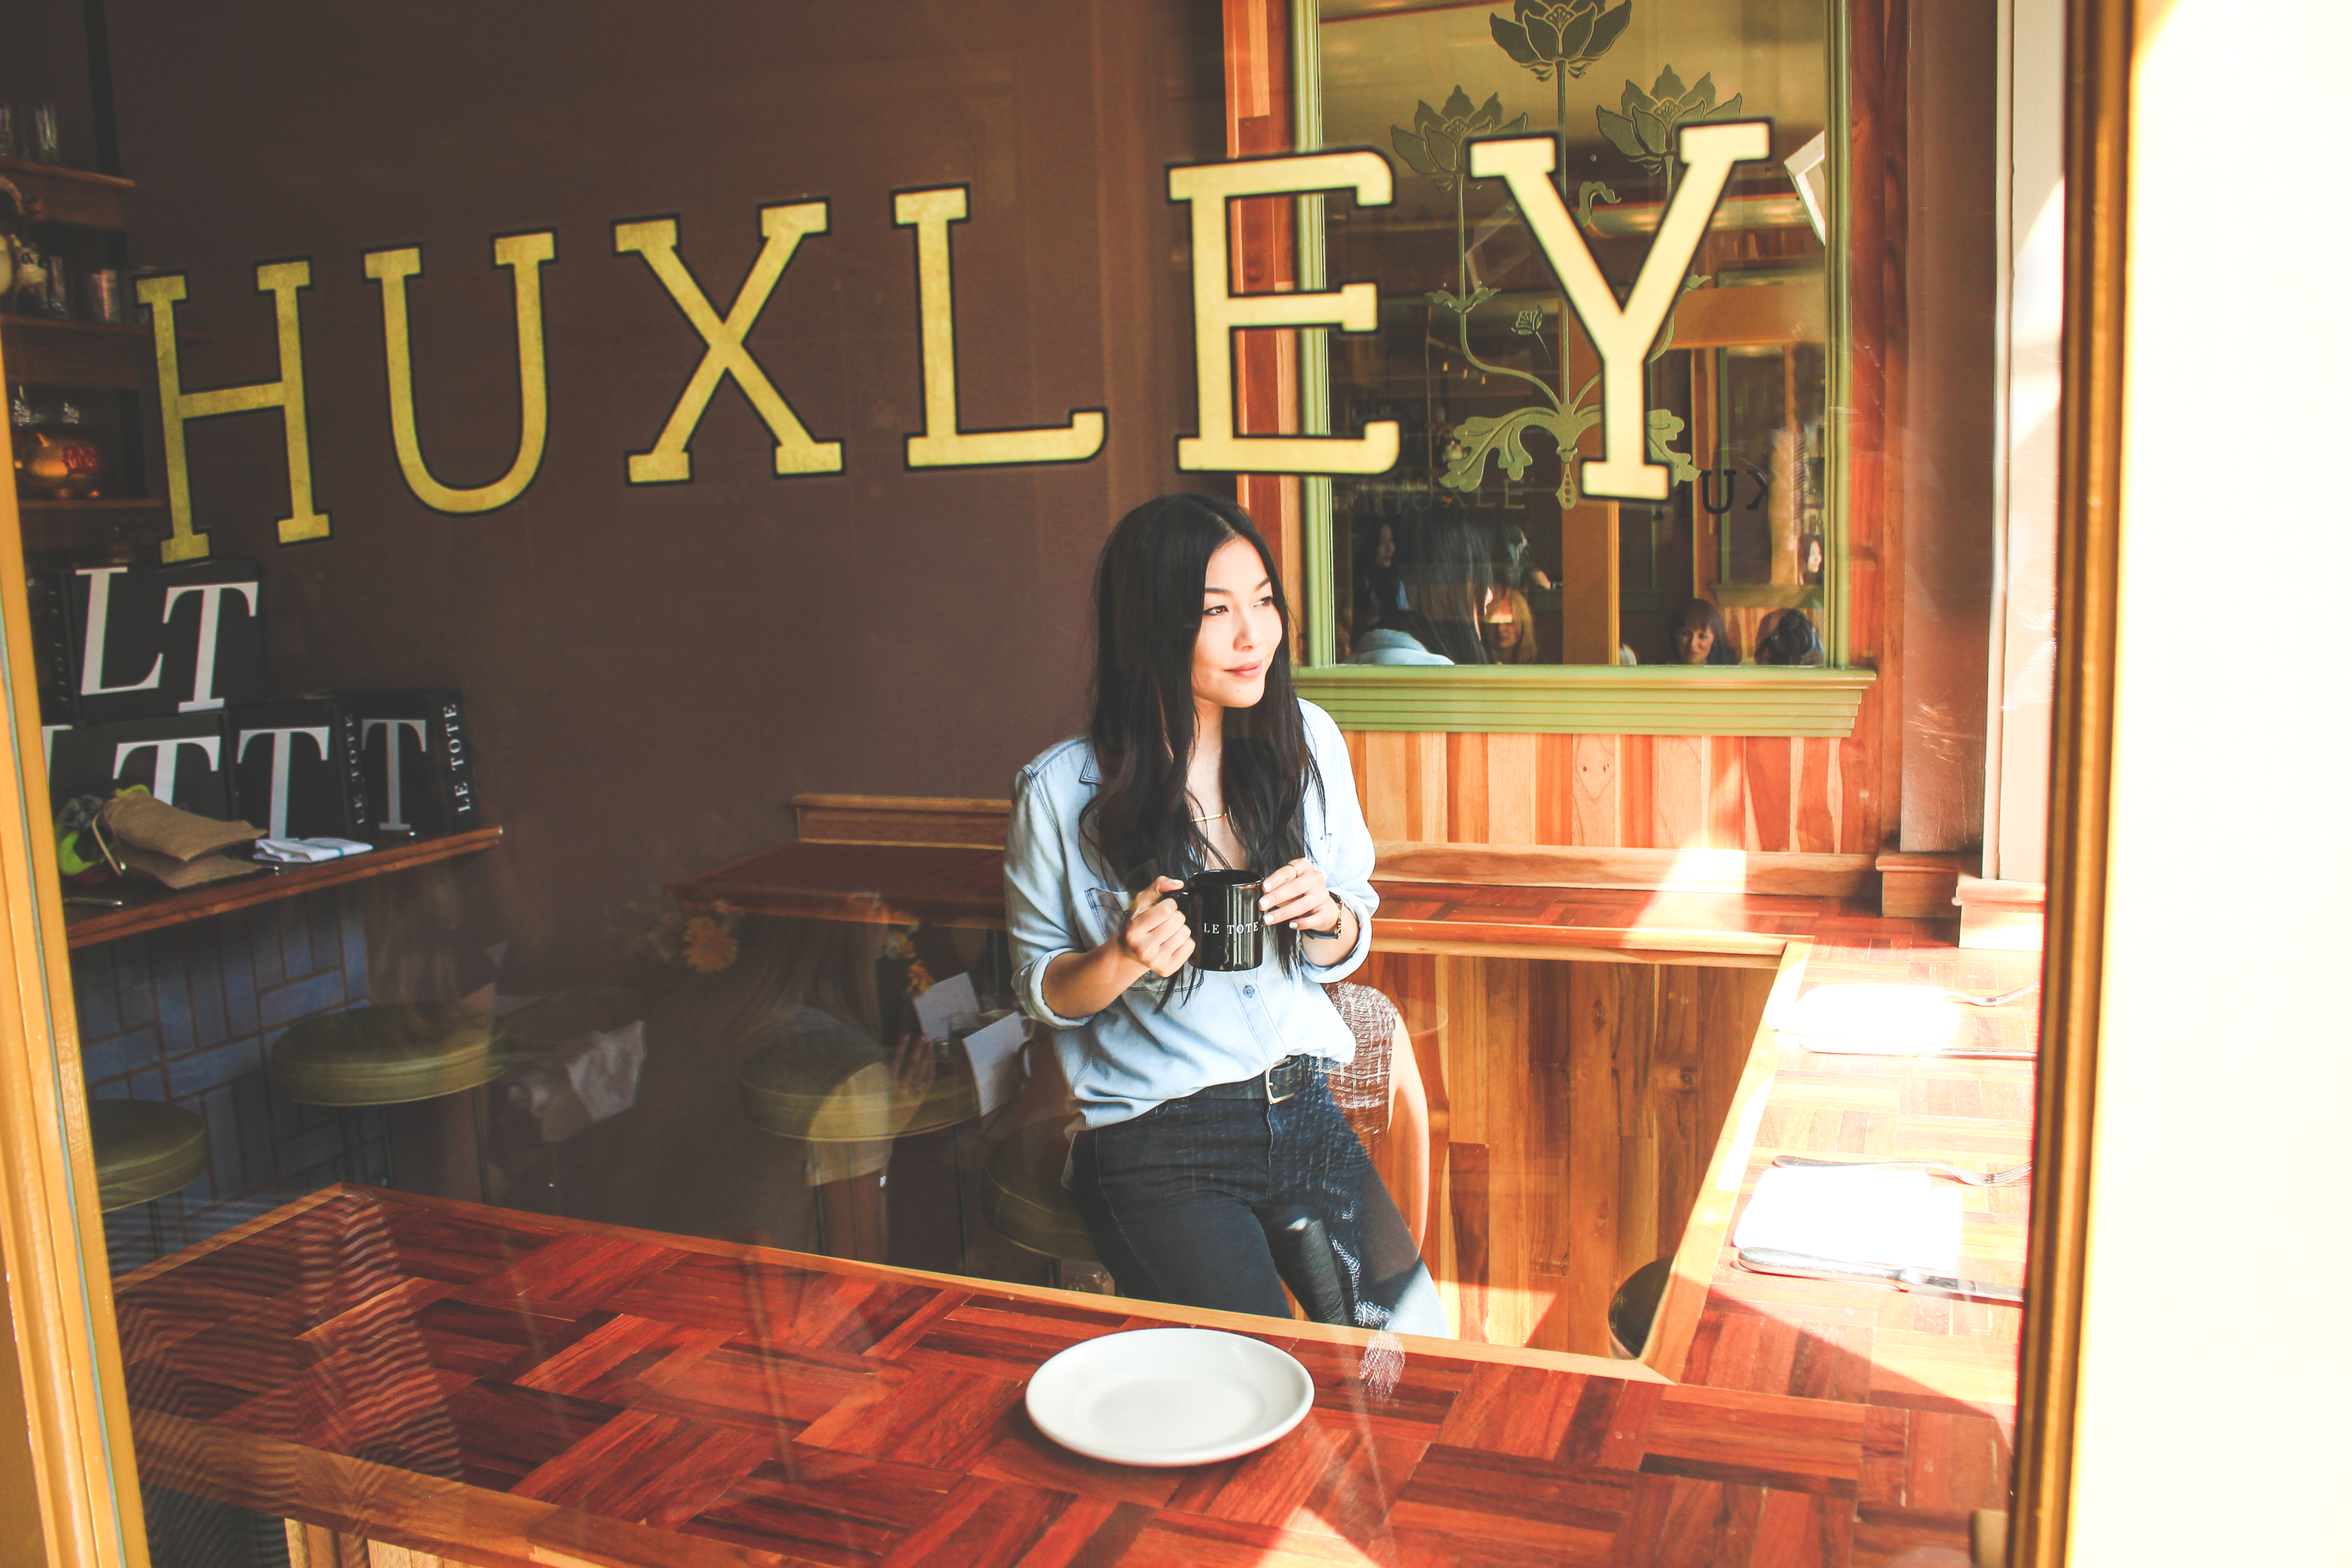 We brunched at Huxley, one of San Francisco's hottest new restaurants. Lindsay Louie brings Spring in with a bang in a chambray shirt!